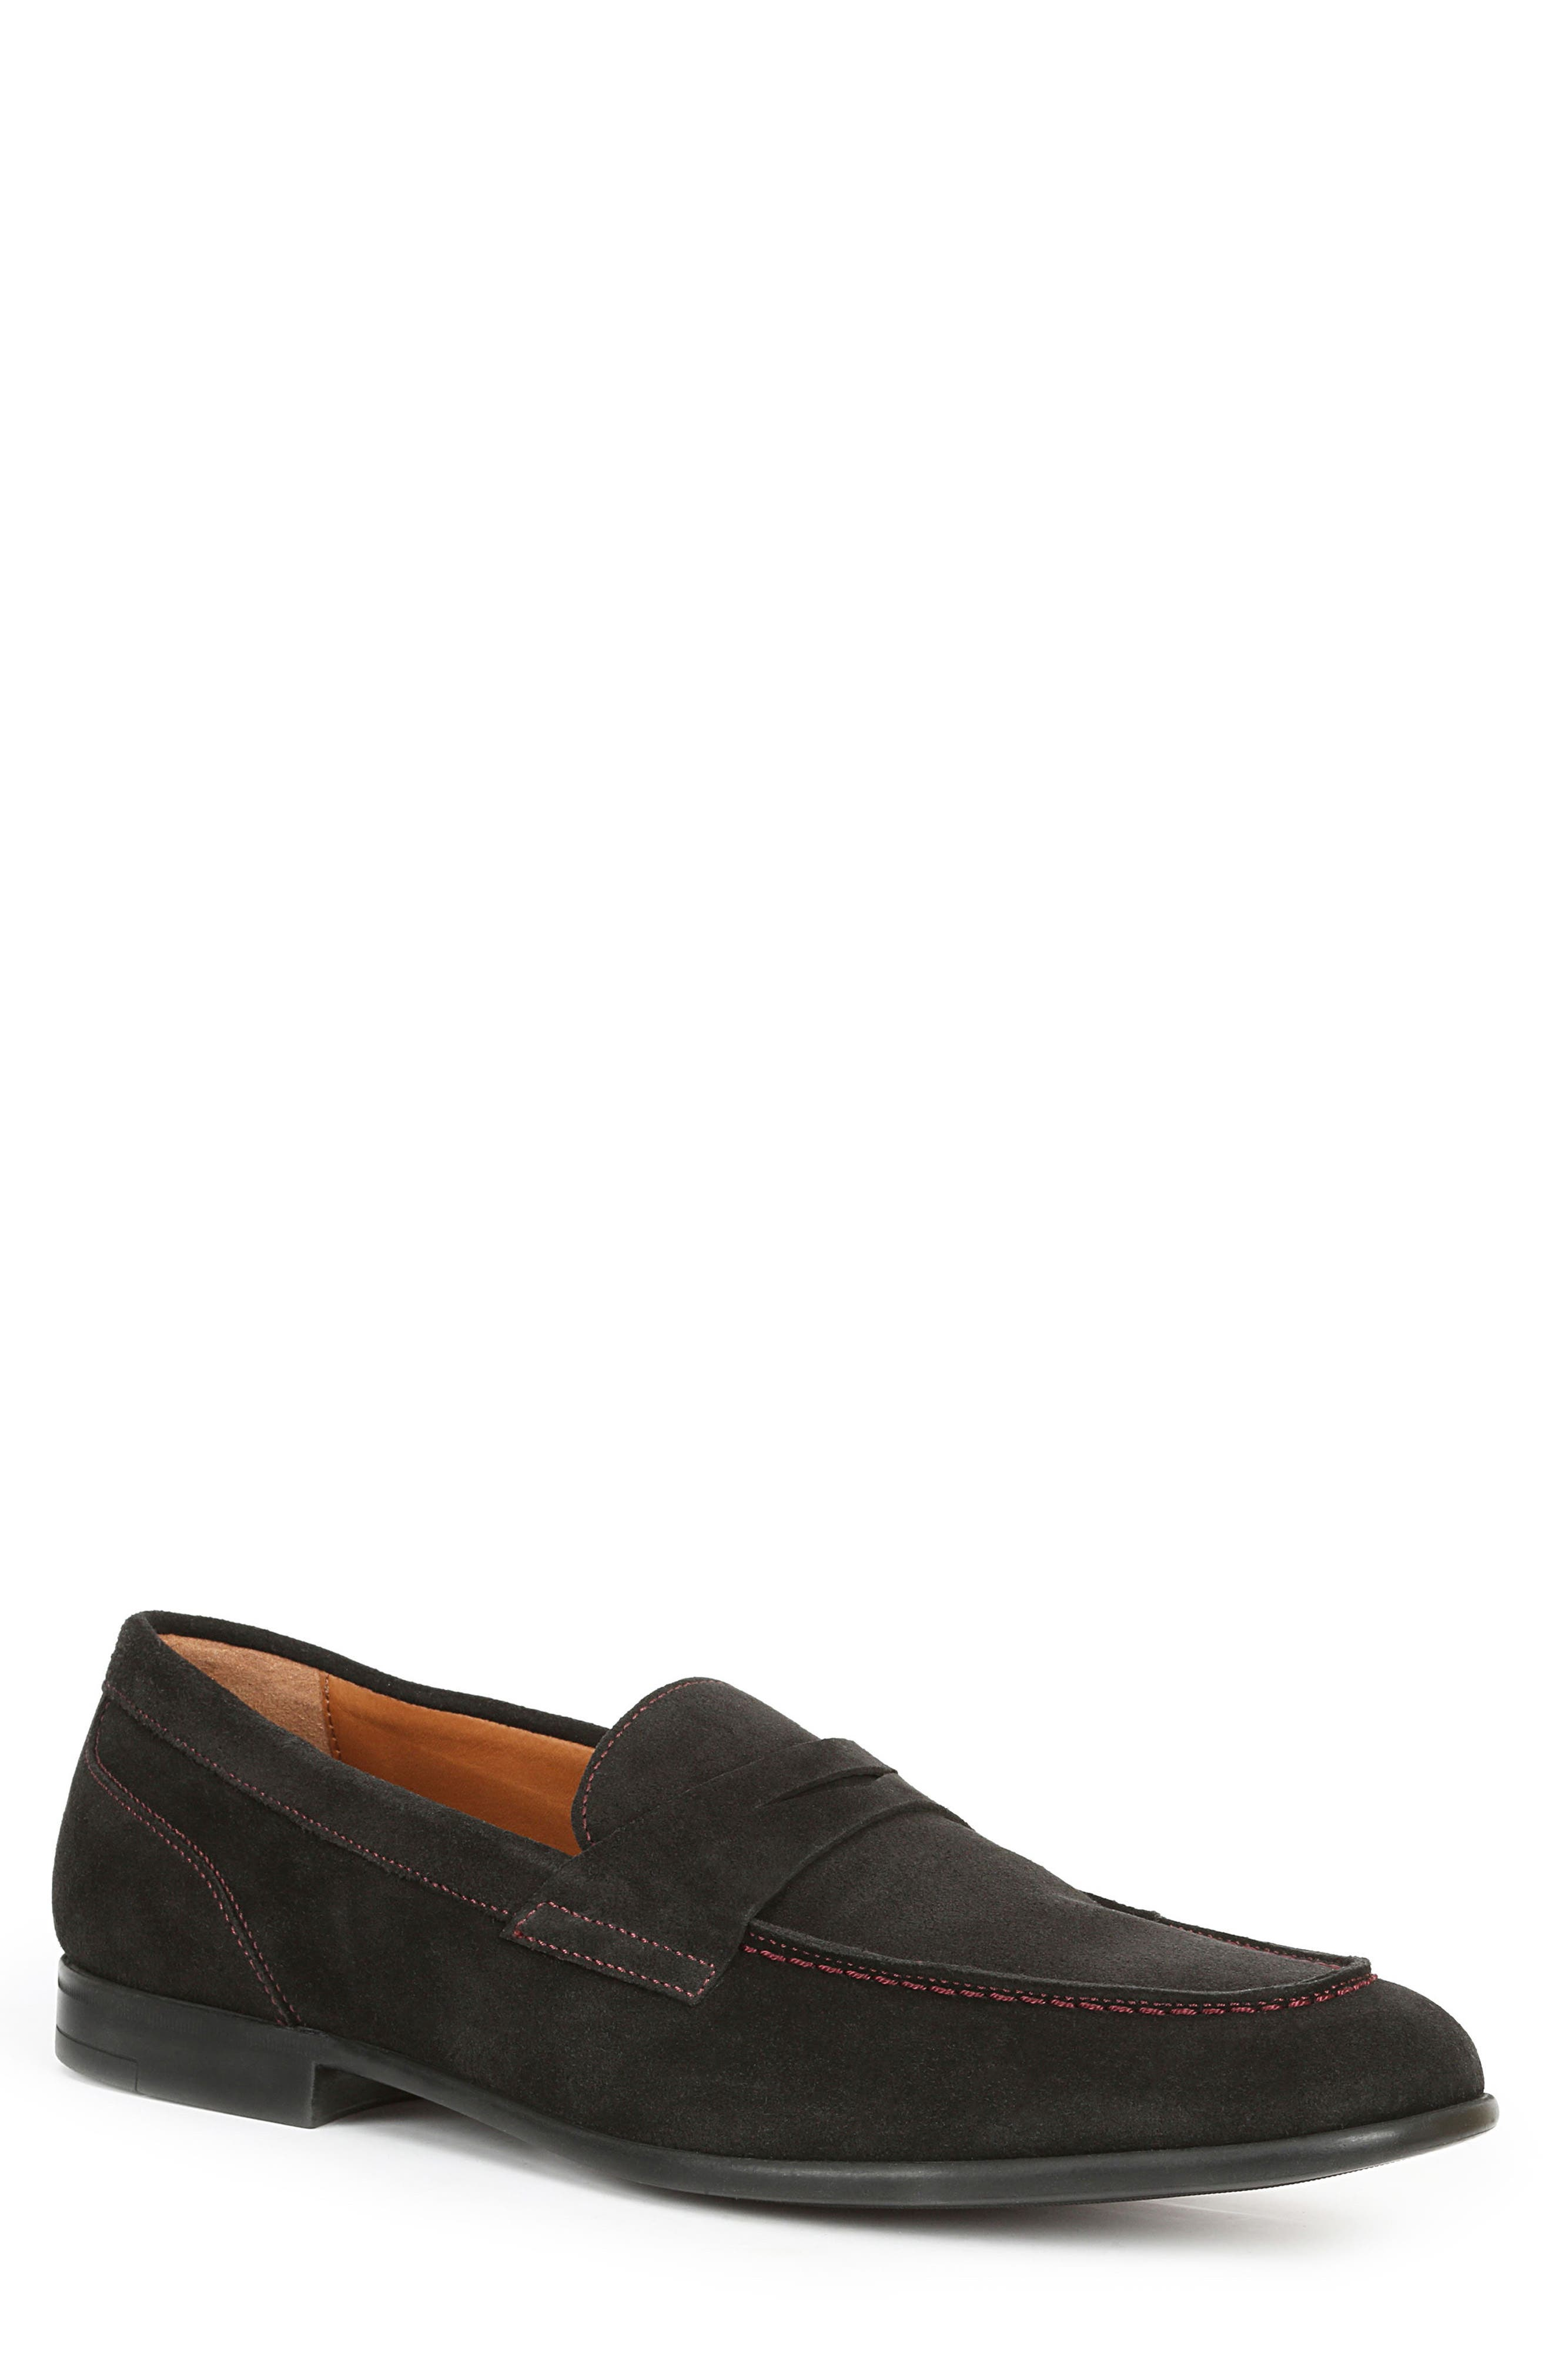 Silas Penny Loafer,                             Main thumbnail 1, color,                             BLACK